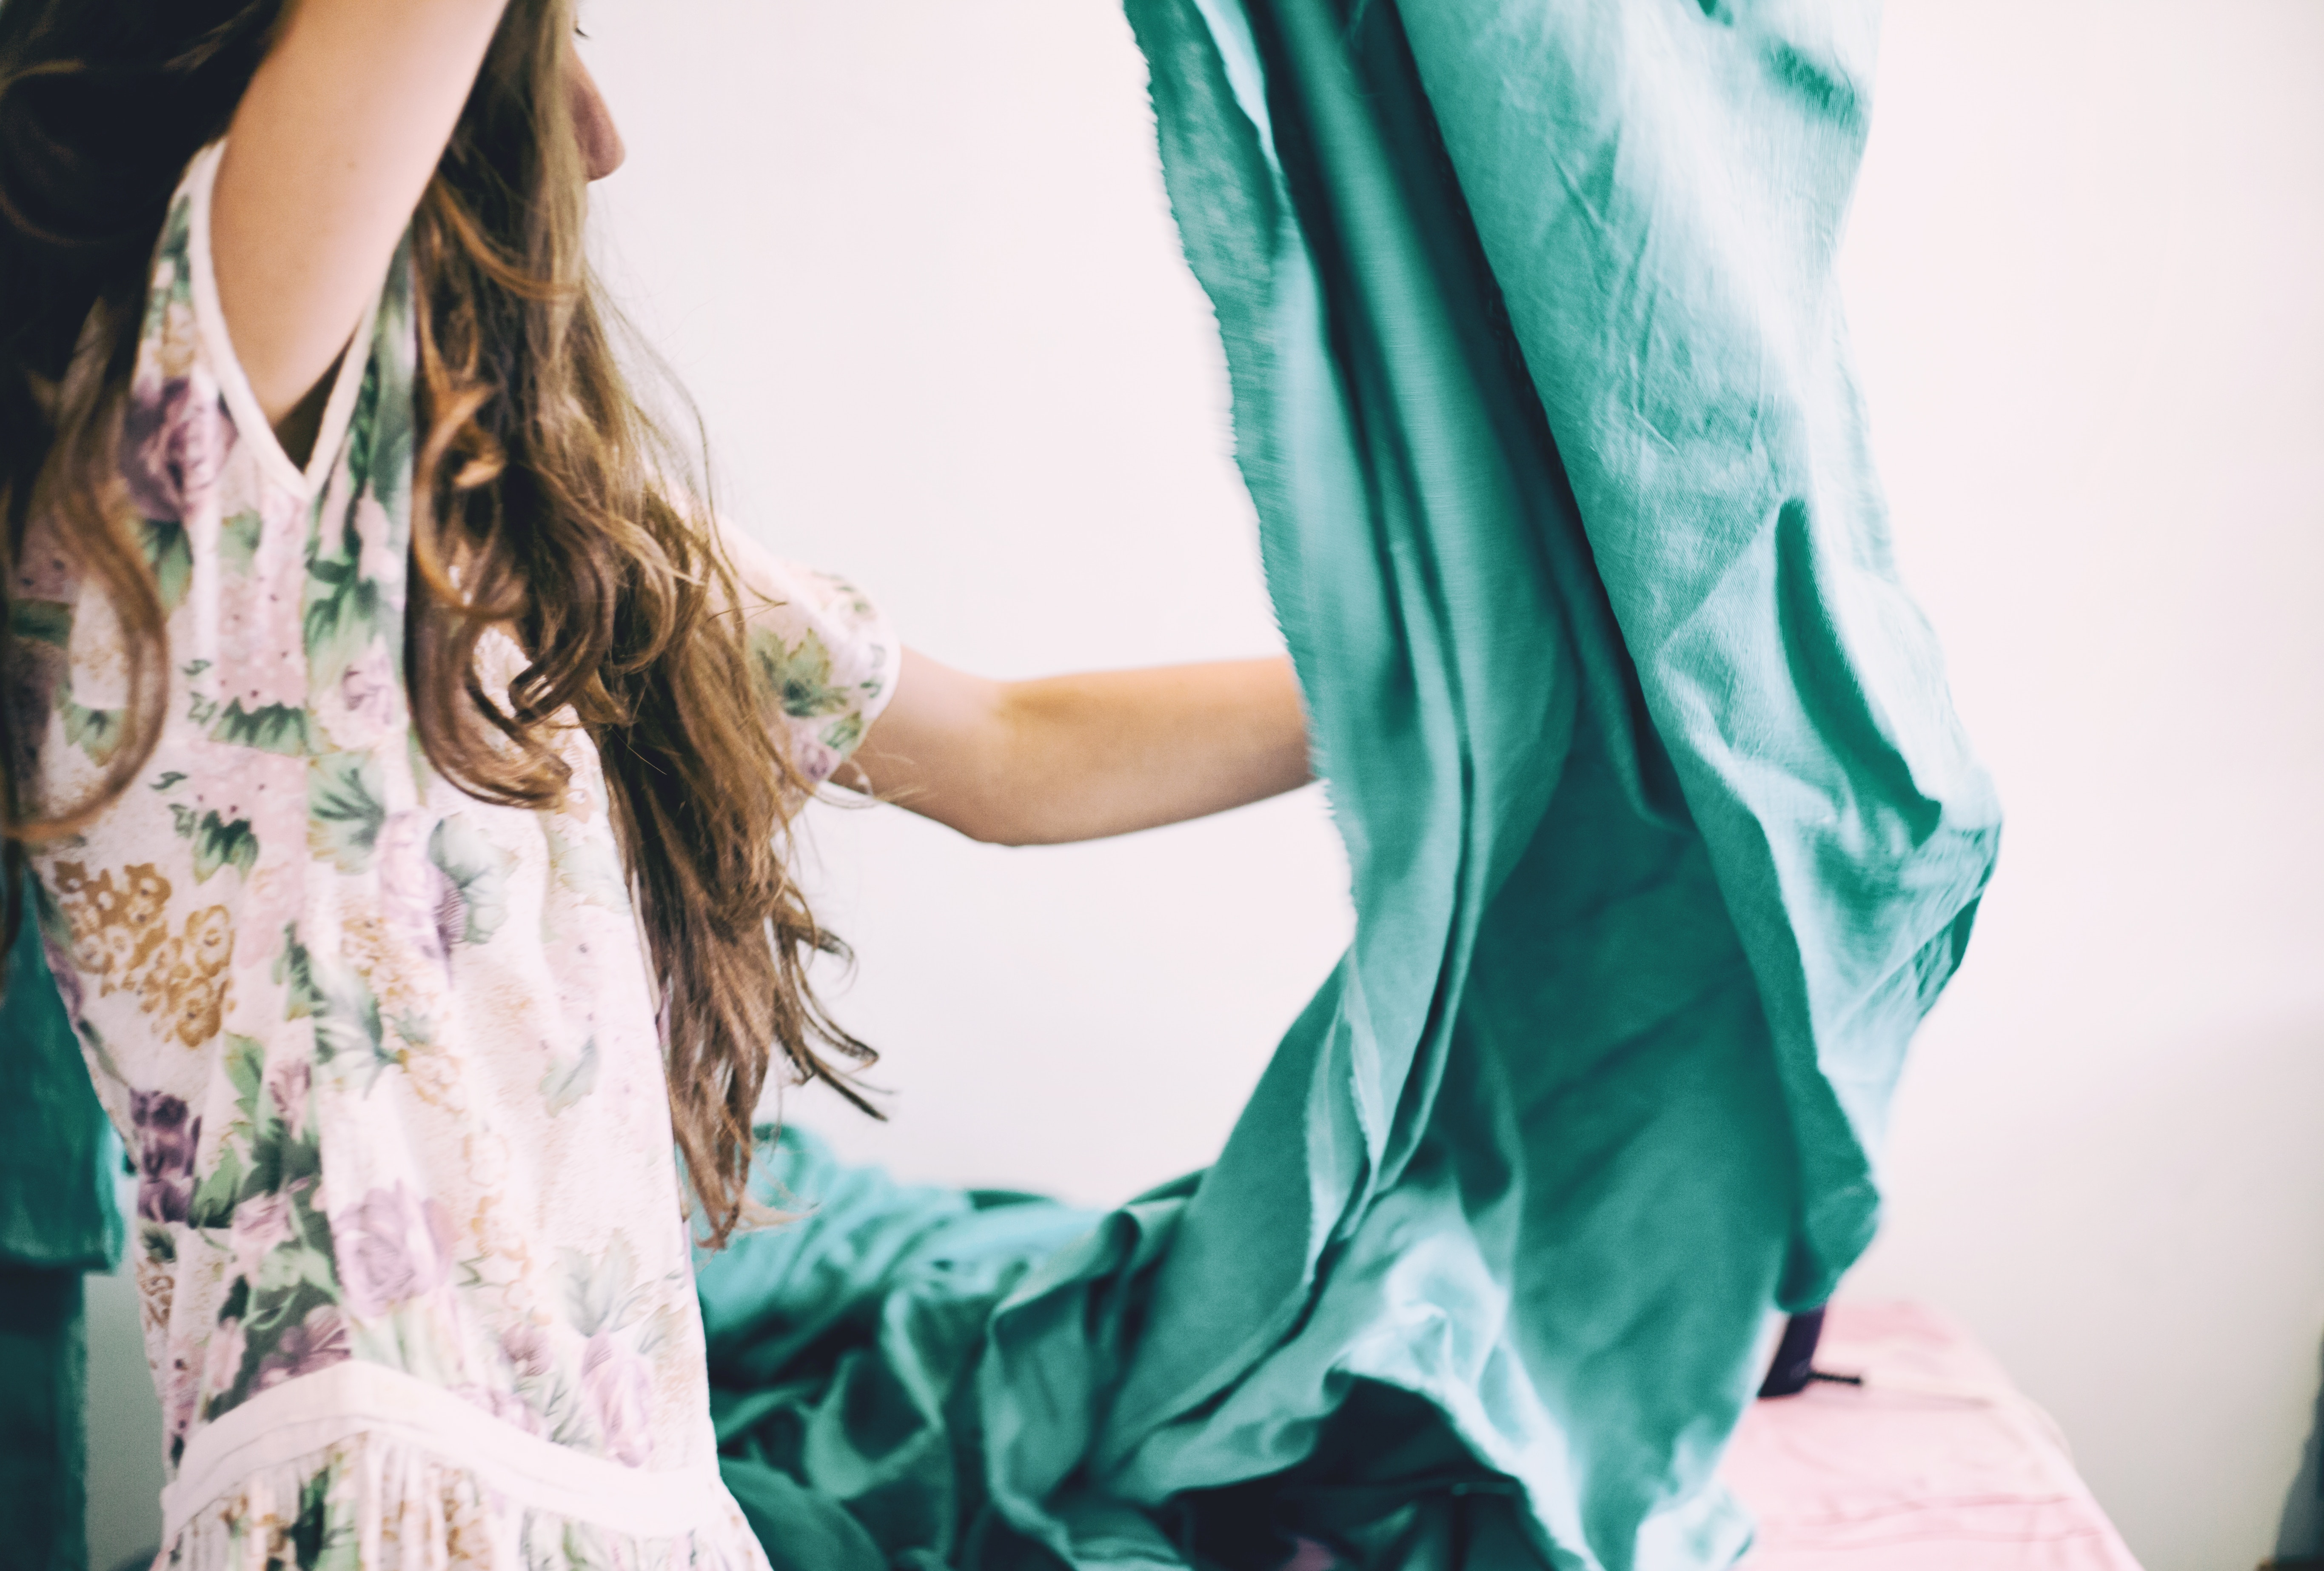 The 3 R's For The Fashion Savvy: Reduce, Reuse, and Recycle